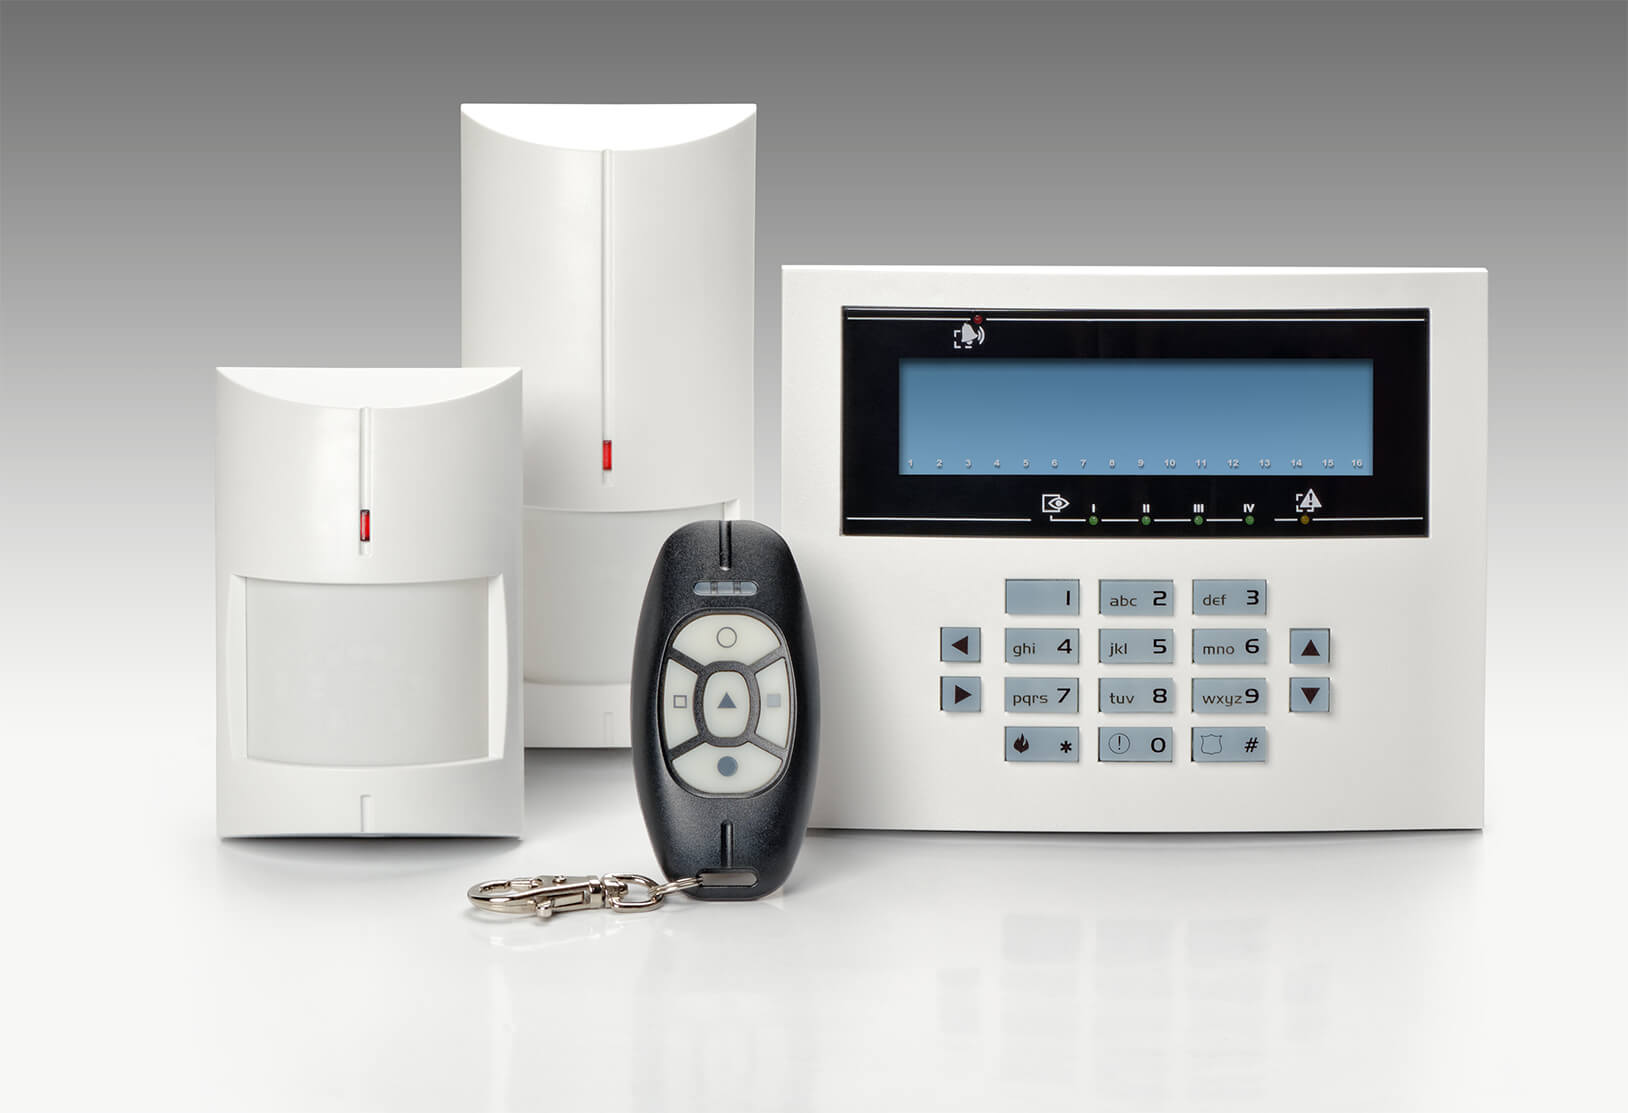 Business & Residential NACOSS Approved Burglar Alarms In Harlesden NW10 - Local Harlesden NW10 security company.Call 02078872244 - Dedicated to Safety & Security. Companies, shops and homes ..